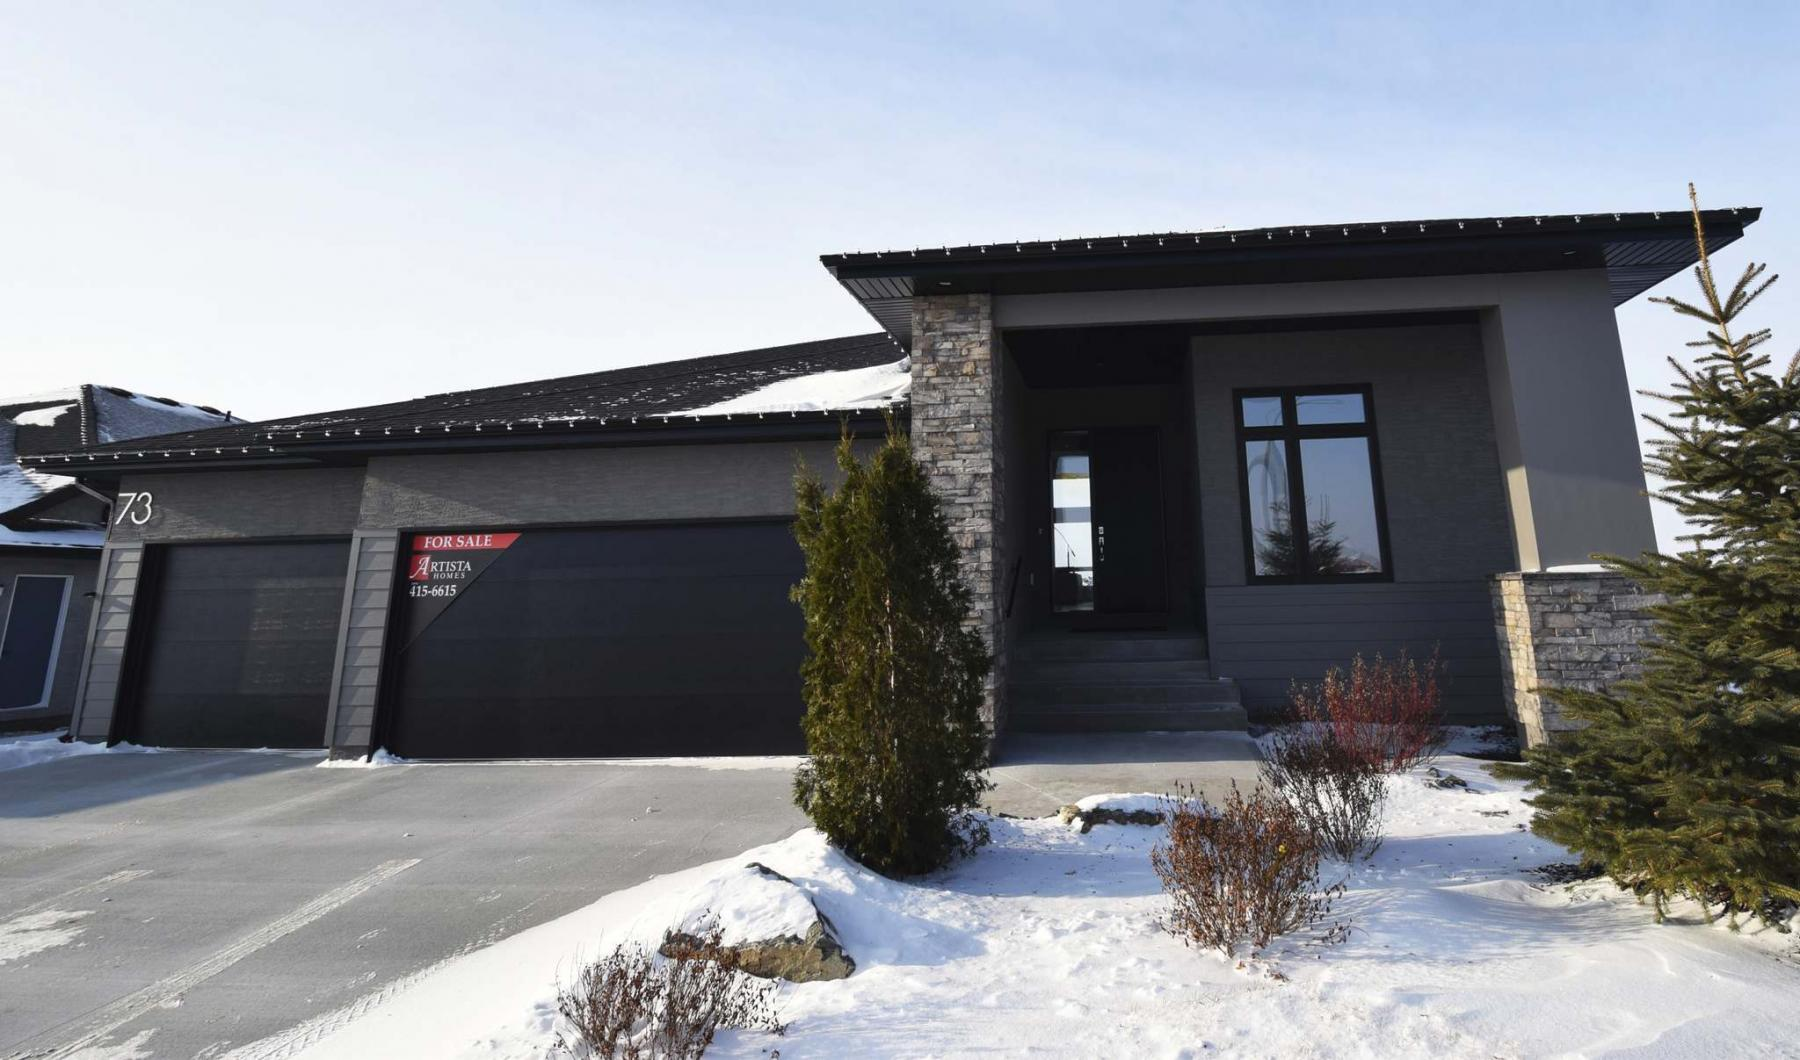 <p>Todd Lewys / Winnipeg Free Press files </p><p>The Manitoba Home Builders' Association's 2020 Spring Parade of Homes runs from Feb. 29 to March 22.</p>